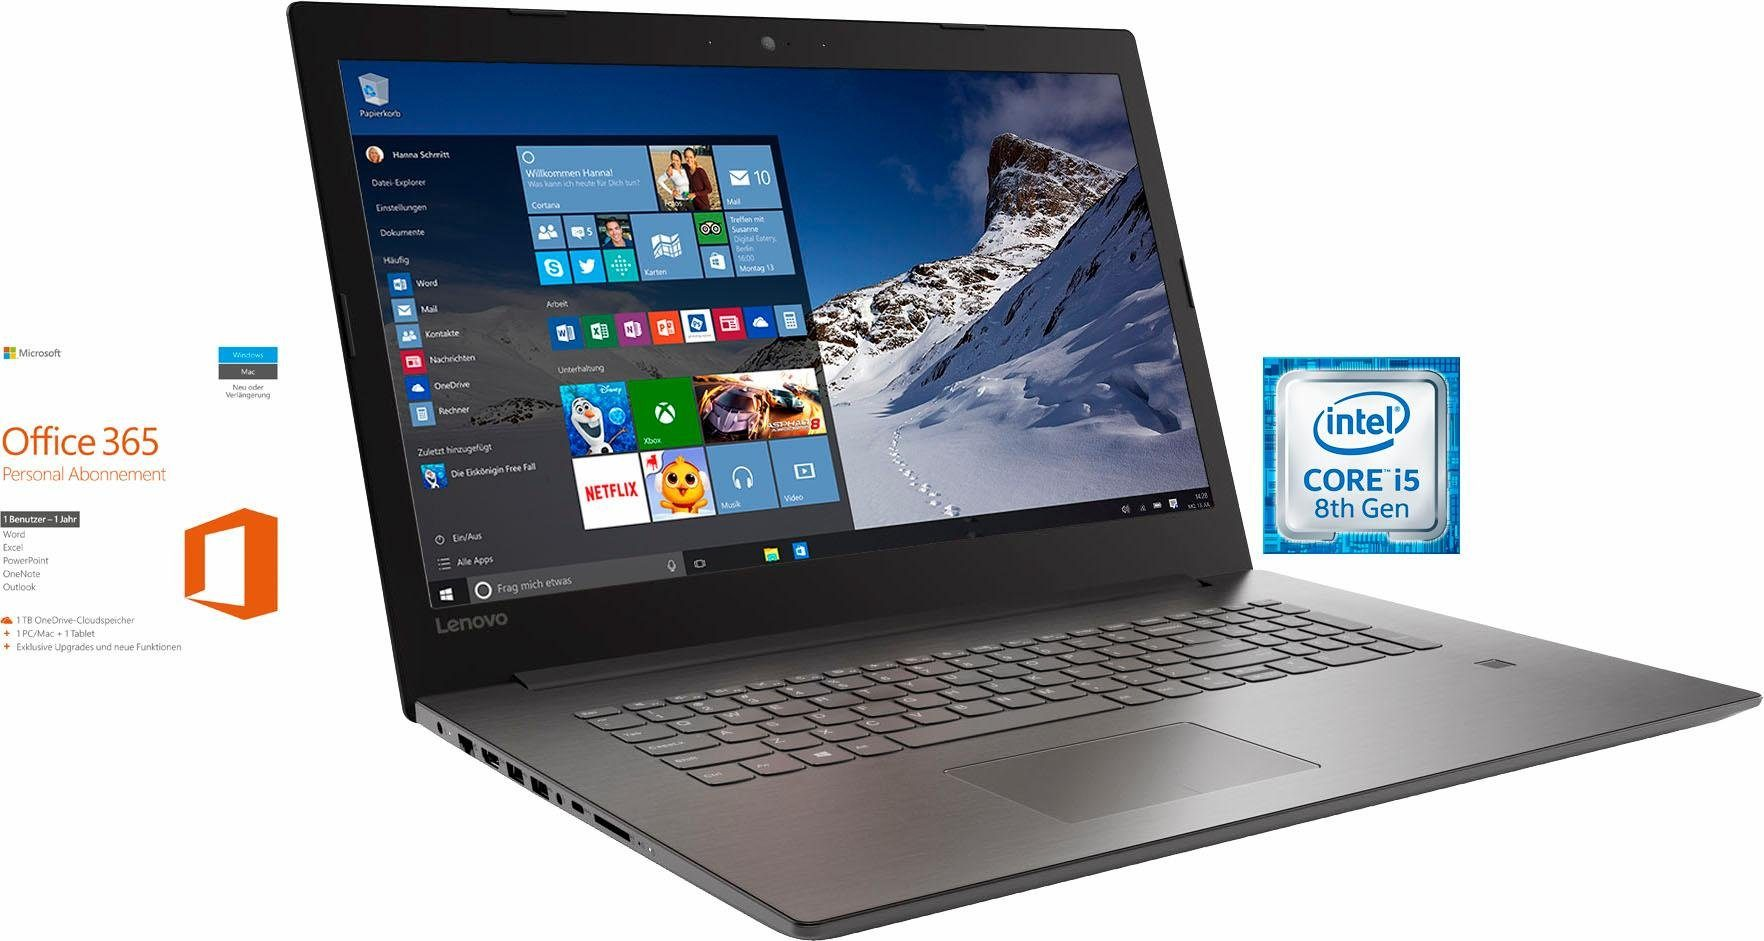 "Lenovo 320-17IKBR, 81BJ0021GE inkl. Office 365, 17,3"" Notebook, Intel® Core™ i5, 43,9 cm (17,3 Zoll)"